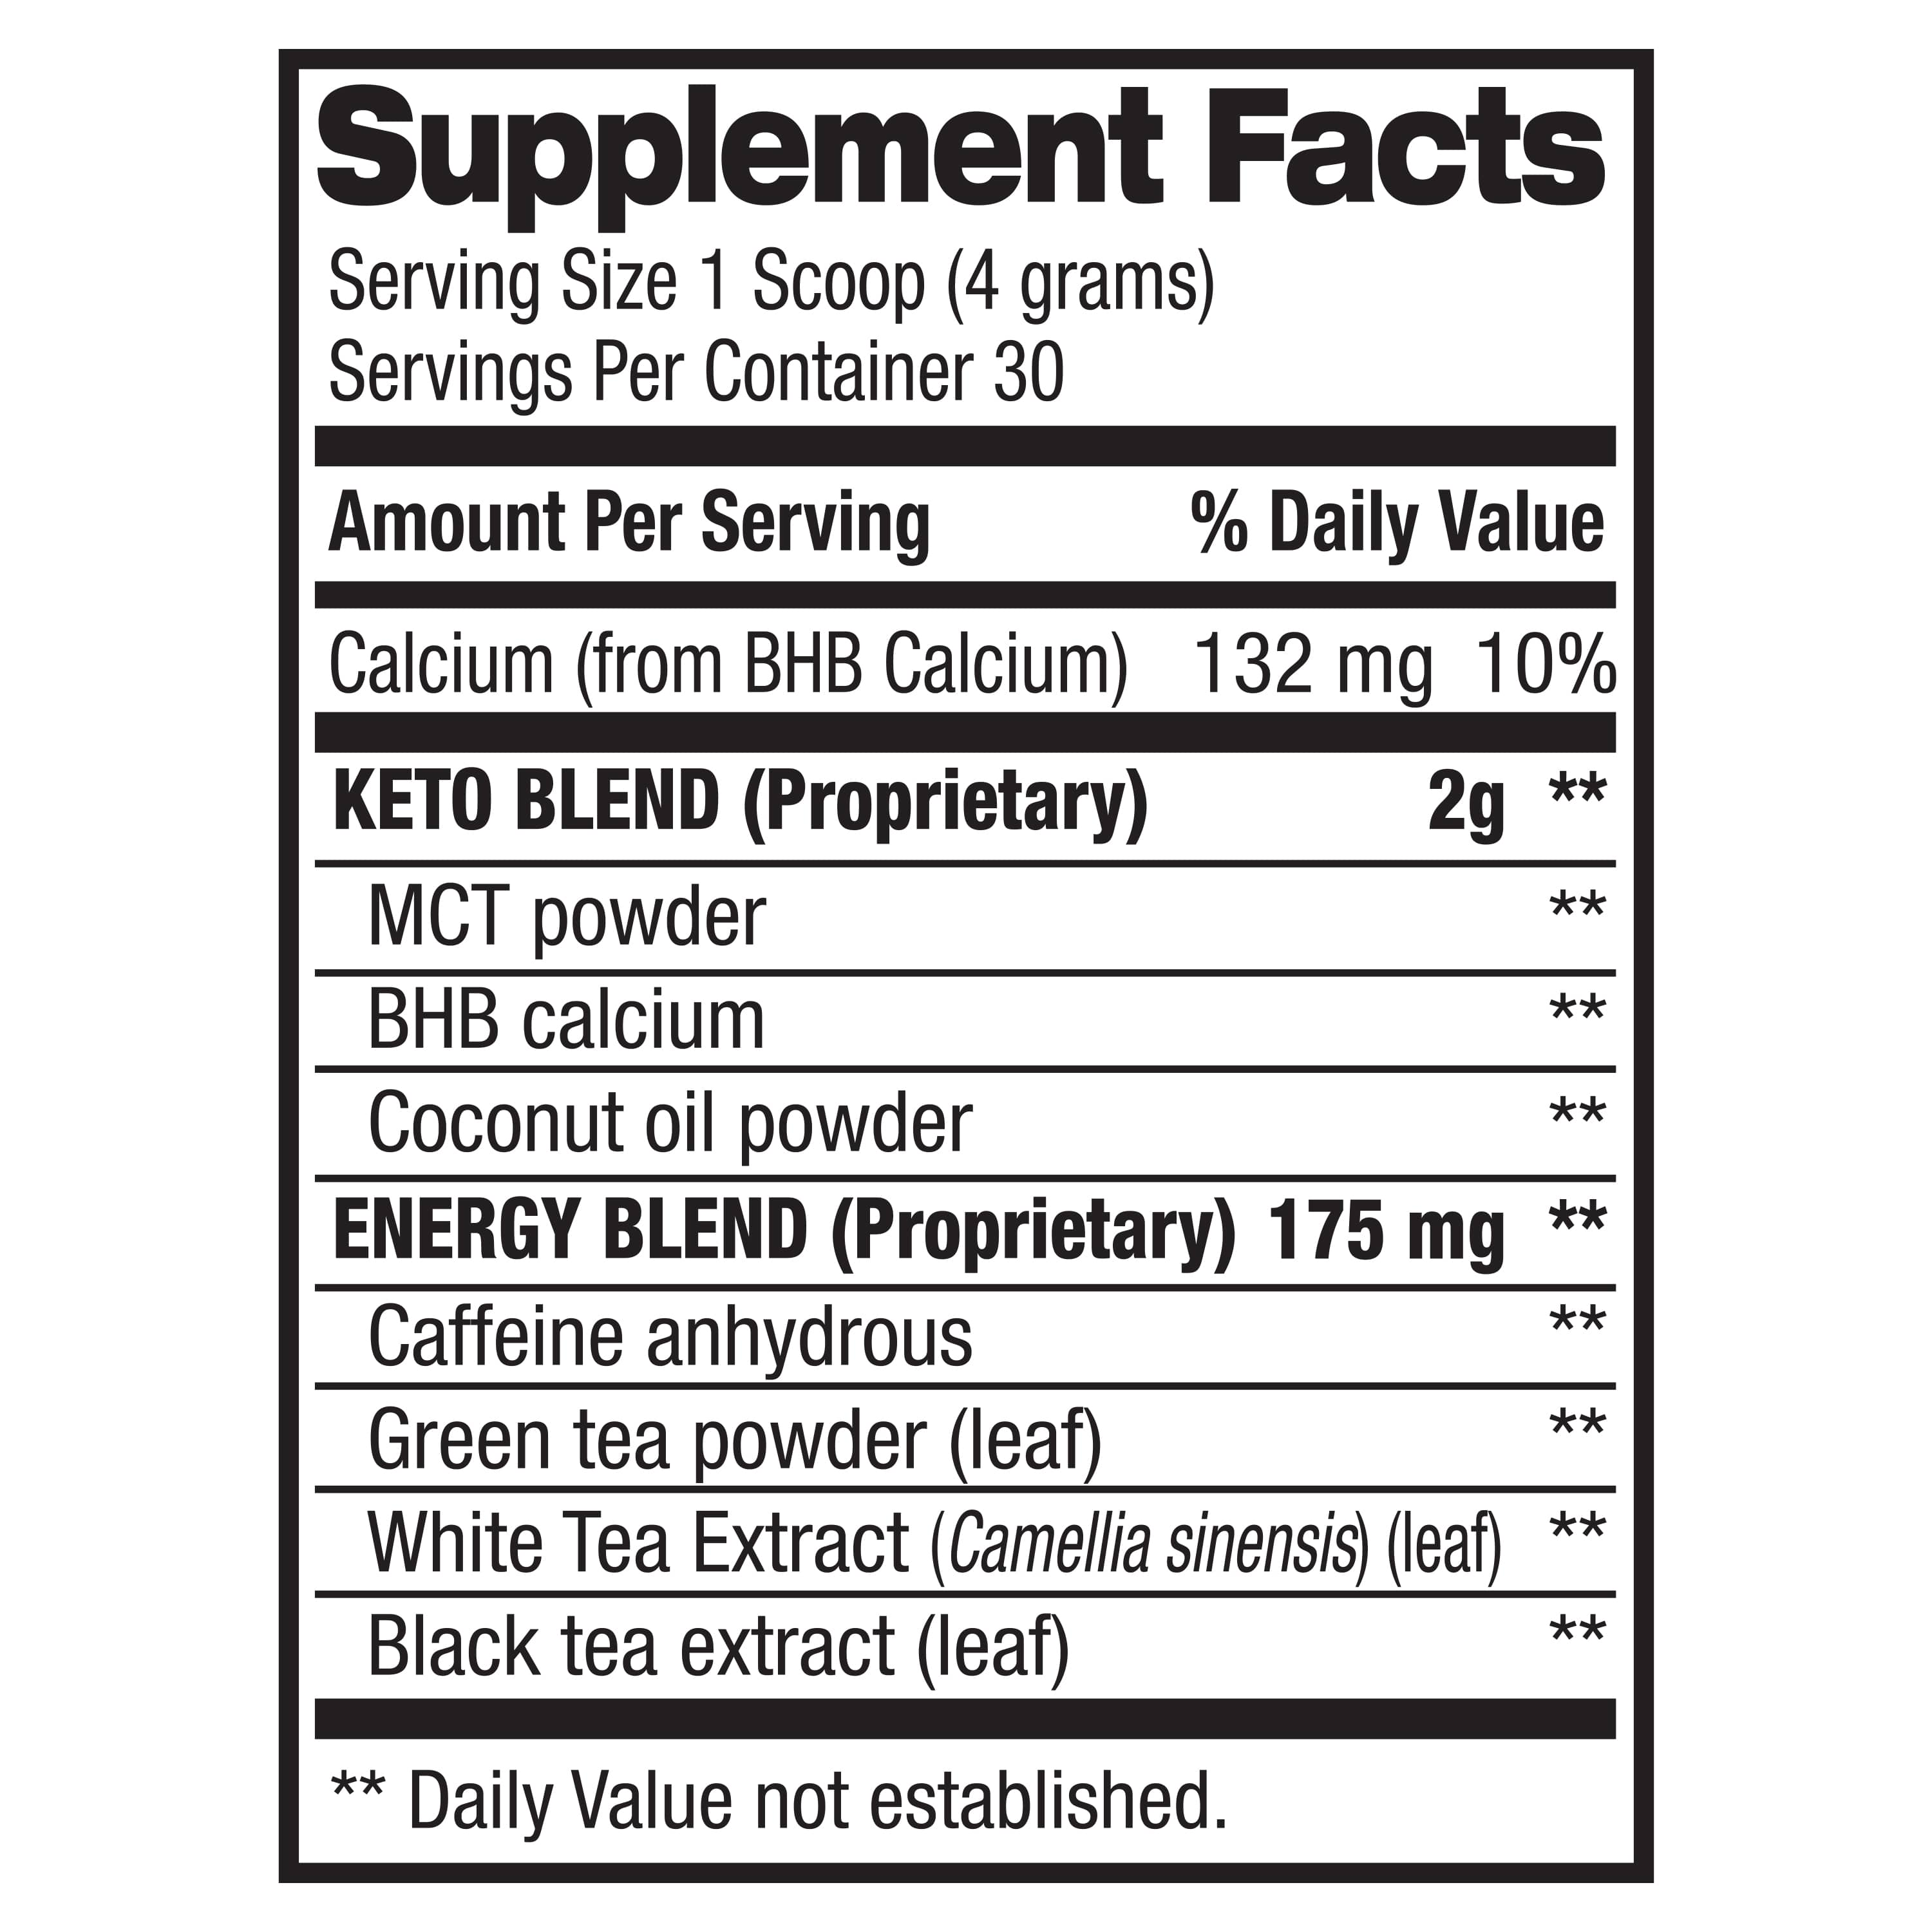 Keto Magic Powder - Weight Loss & Energy (30 Servings) Supplement Facts